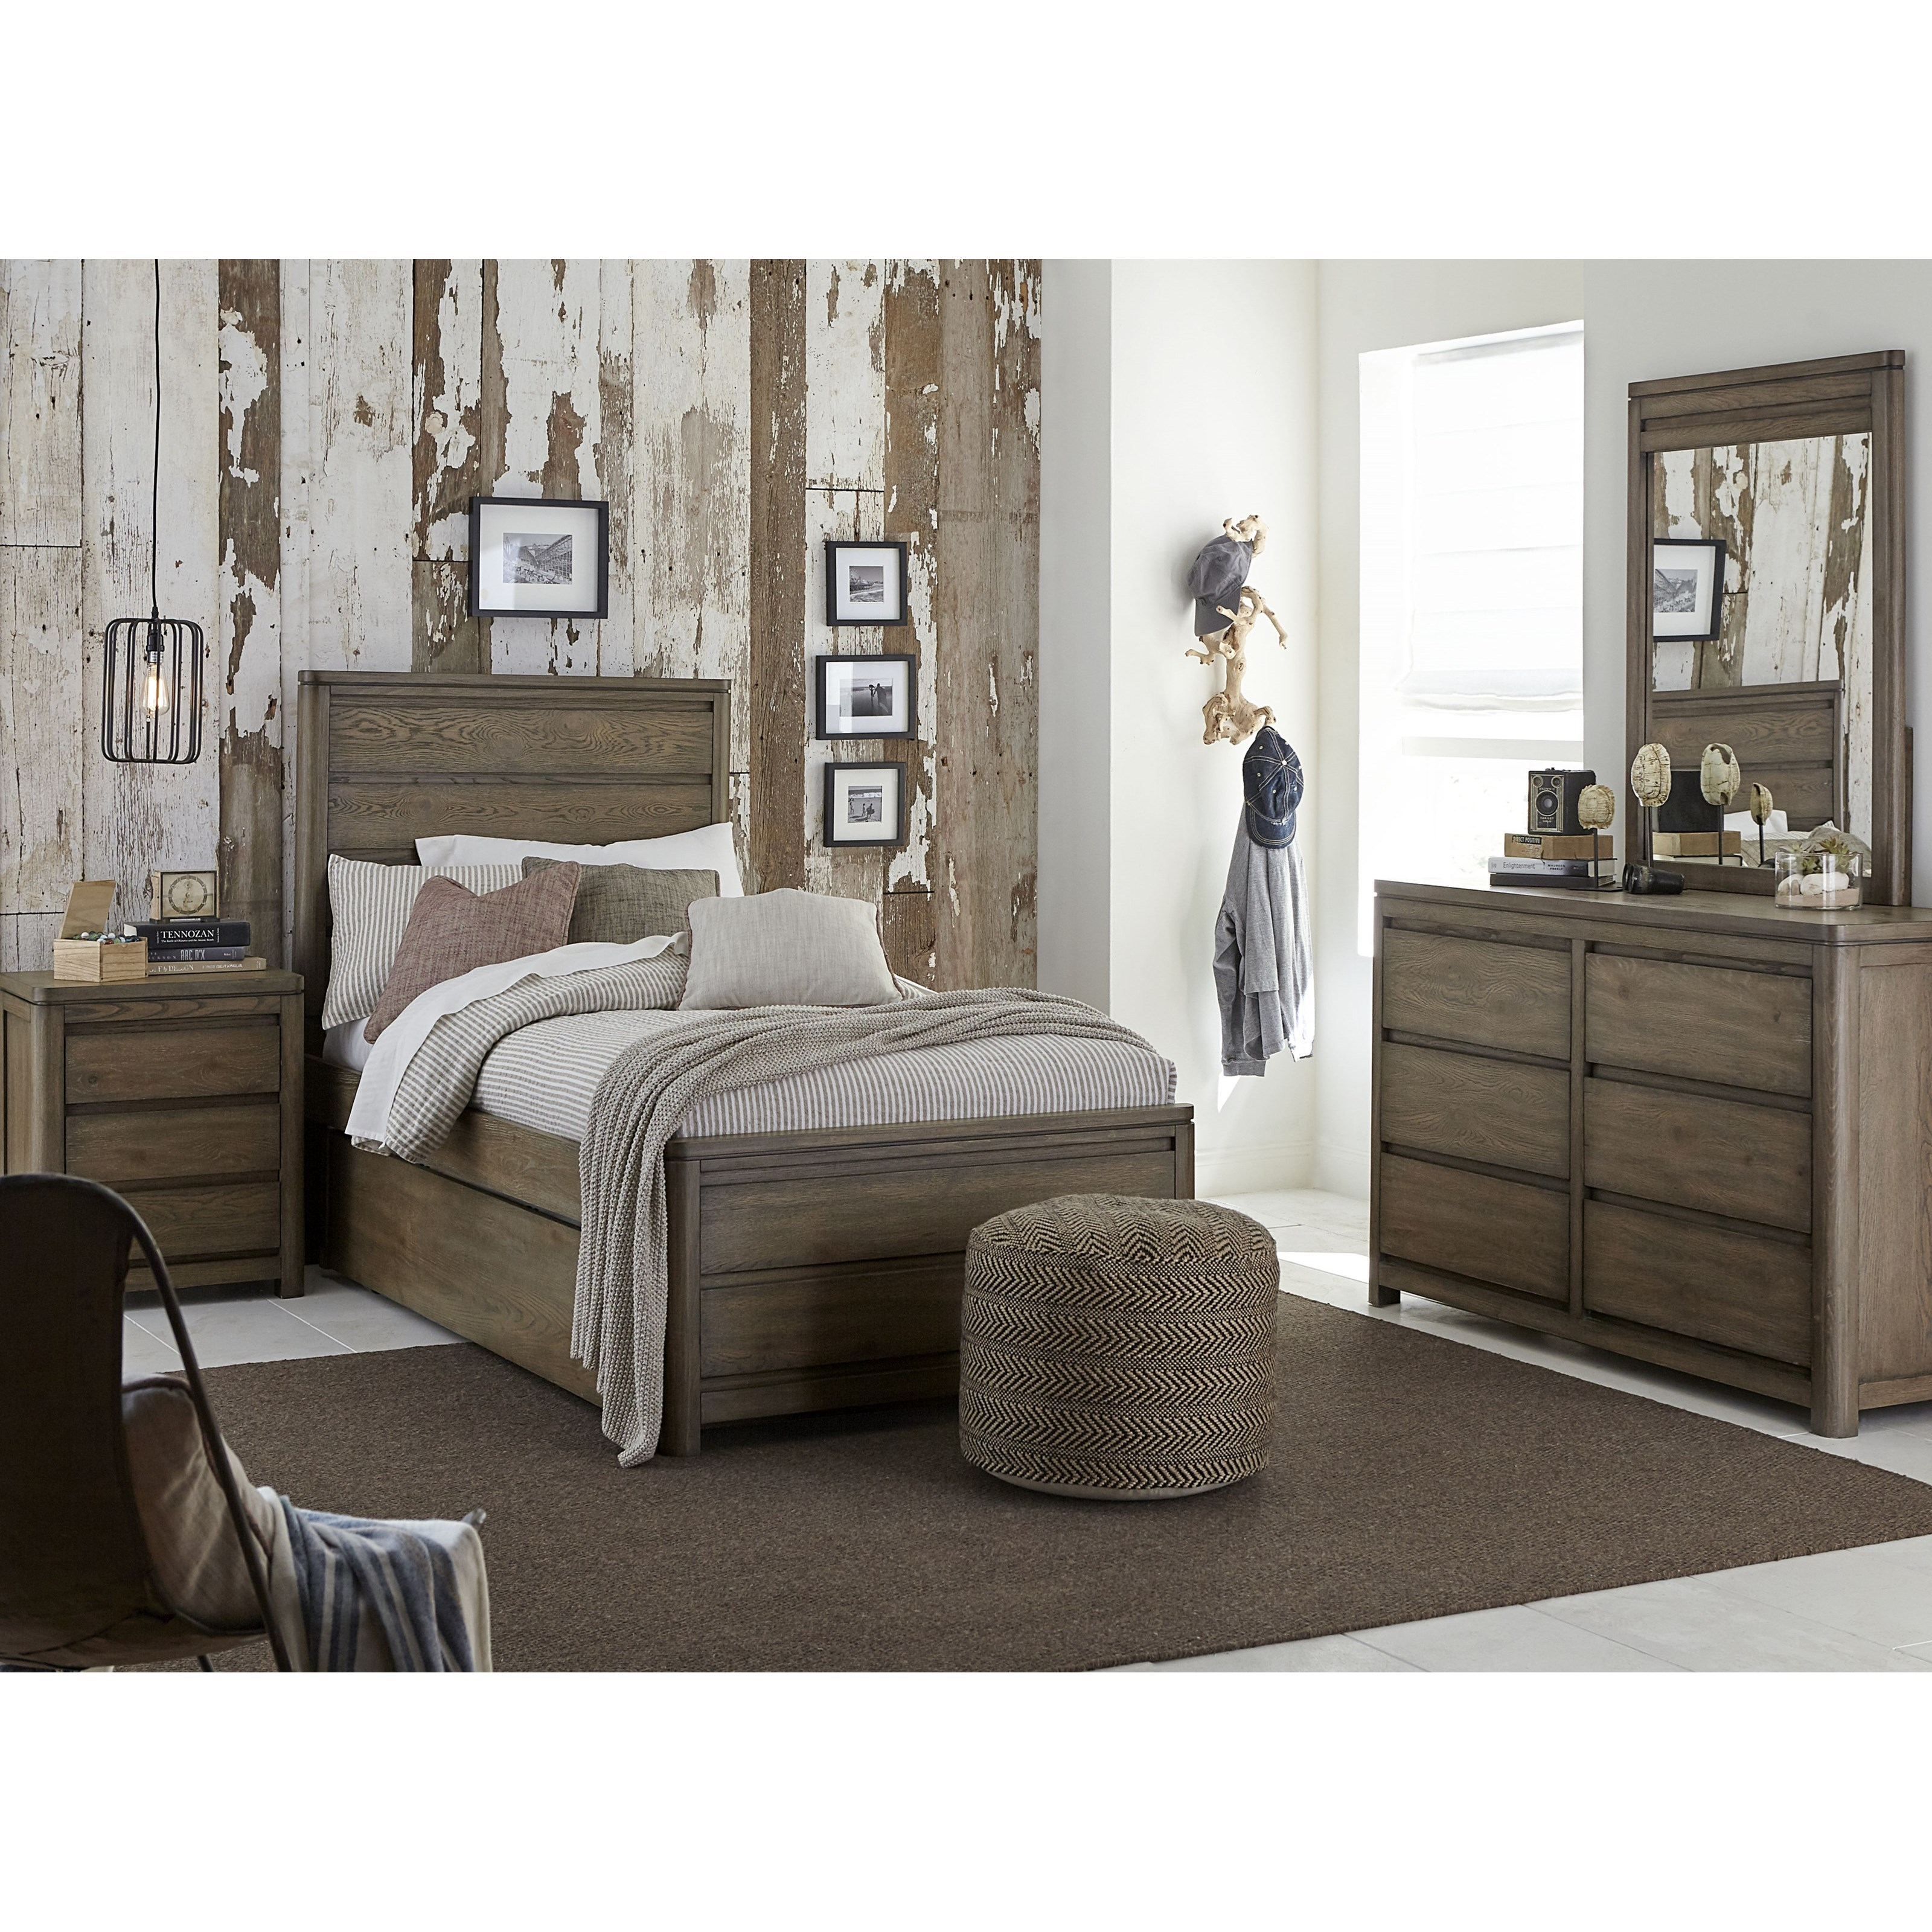 Legacy Classic Kids Big Sky by Wendy Bellissimo Twin Bedroom Group - Item Number: 6810 T Bedroom Group 2